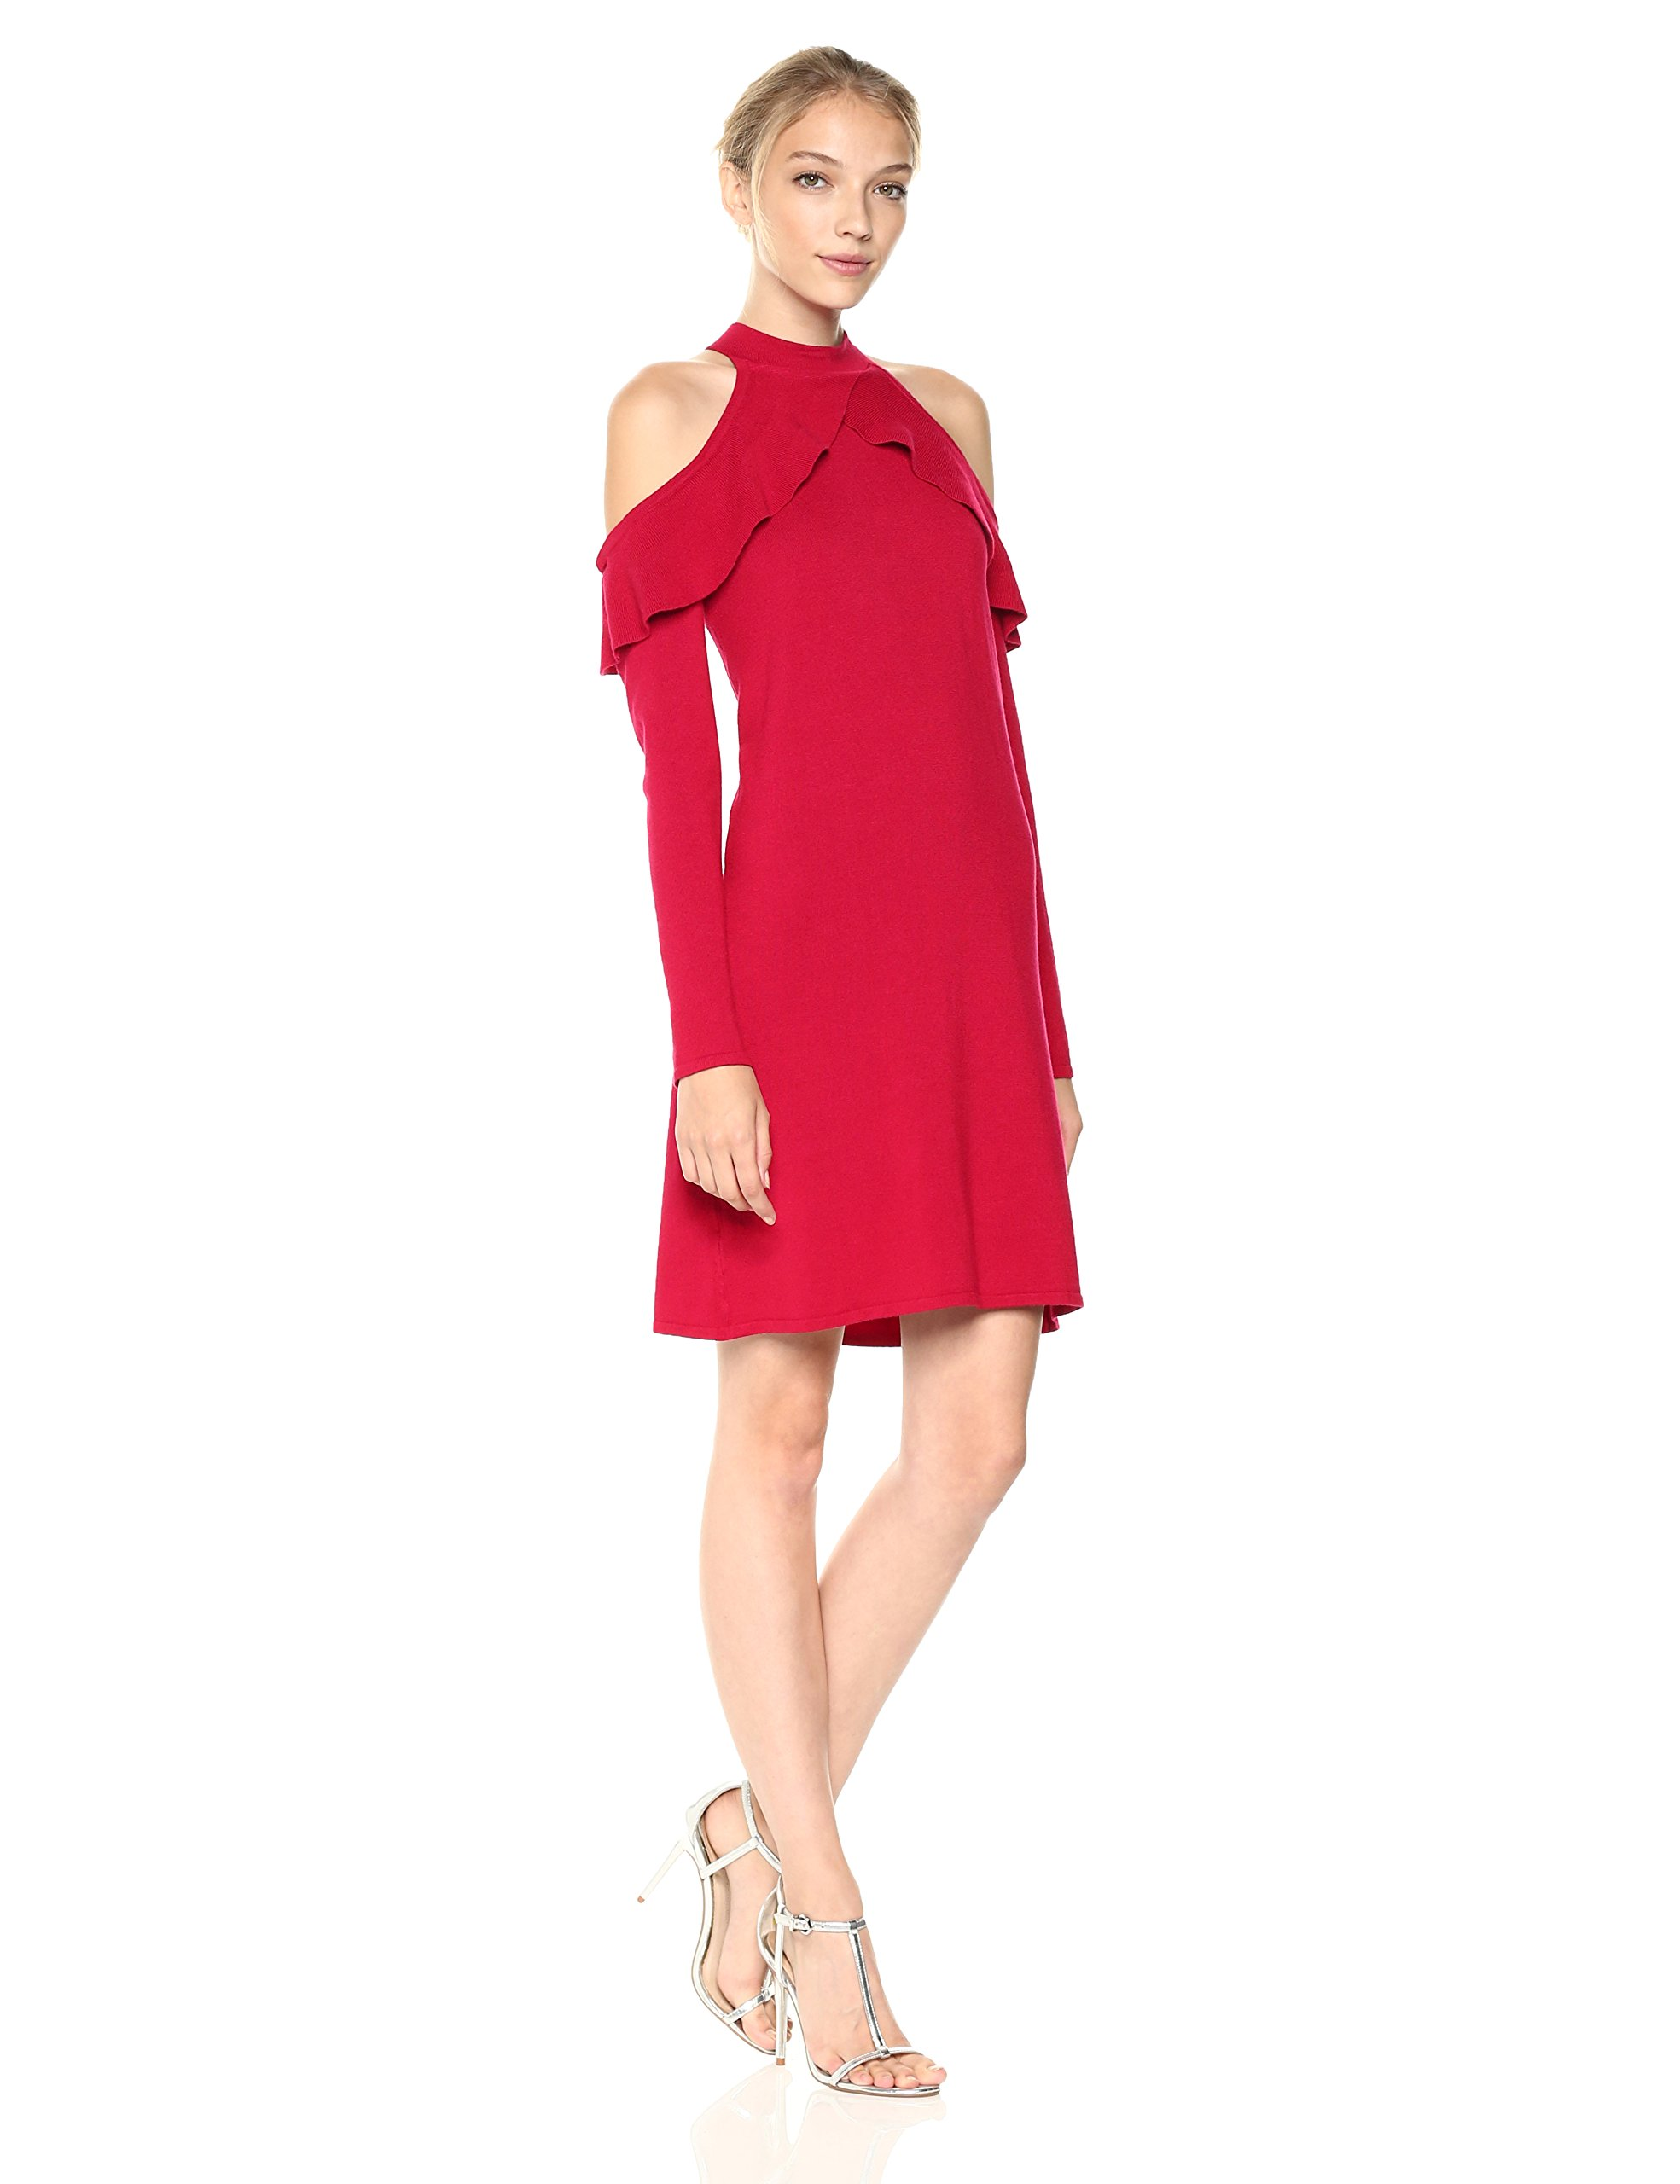 Ali & Jay Women's Love At First Sight Mini Cold Shoulder Ruffle Dress, Scarlet, Small